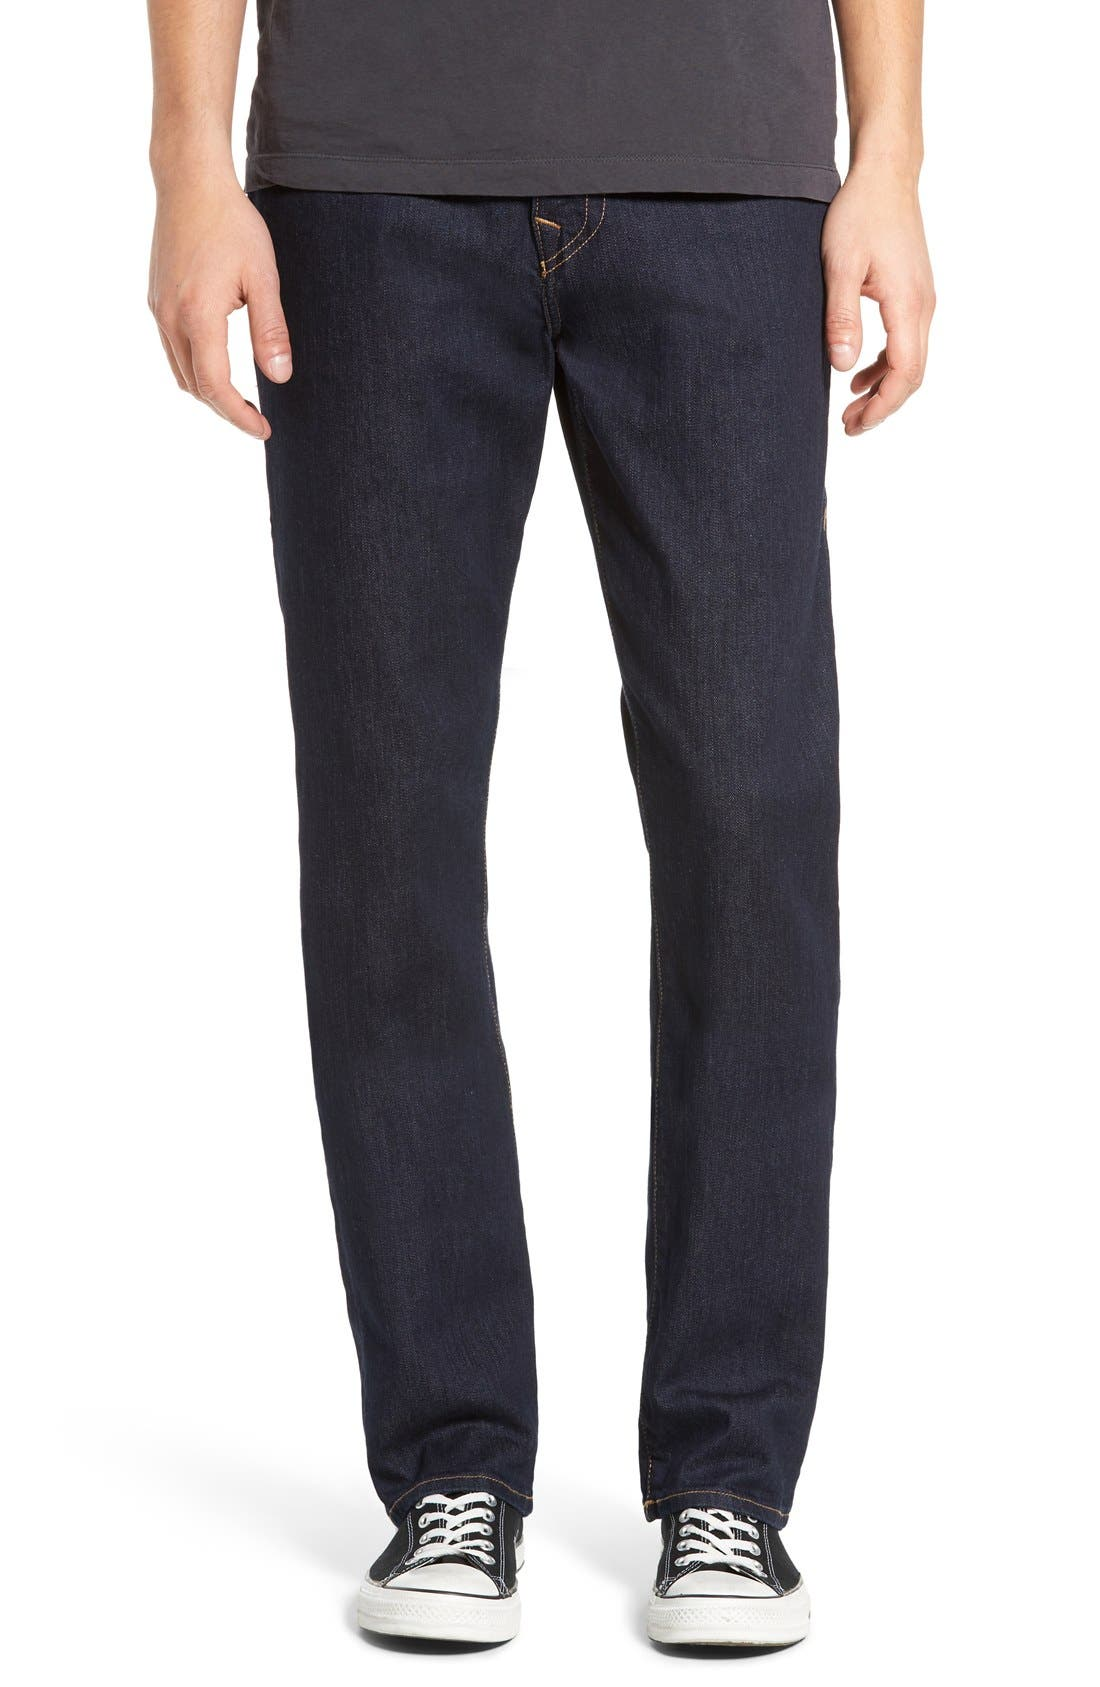 Alternate Image 1 Selected - True Religion Brand Jeans Ricky Relaxed Fit Jeans (2S Body Rinse)